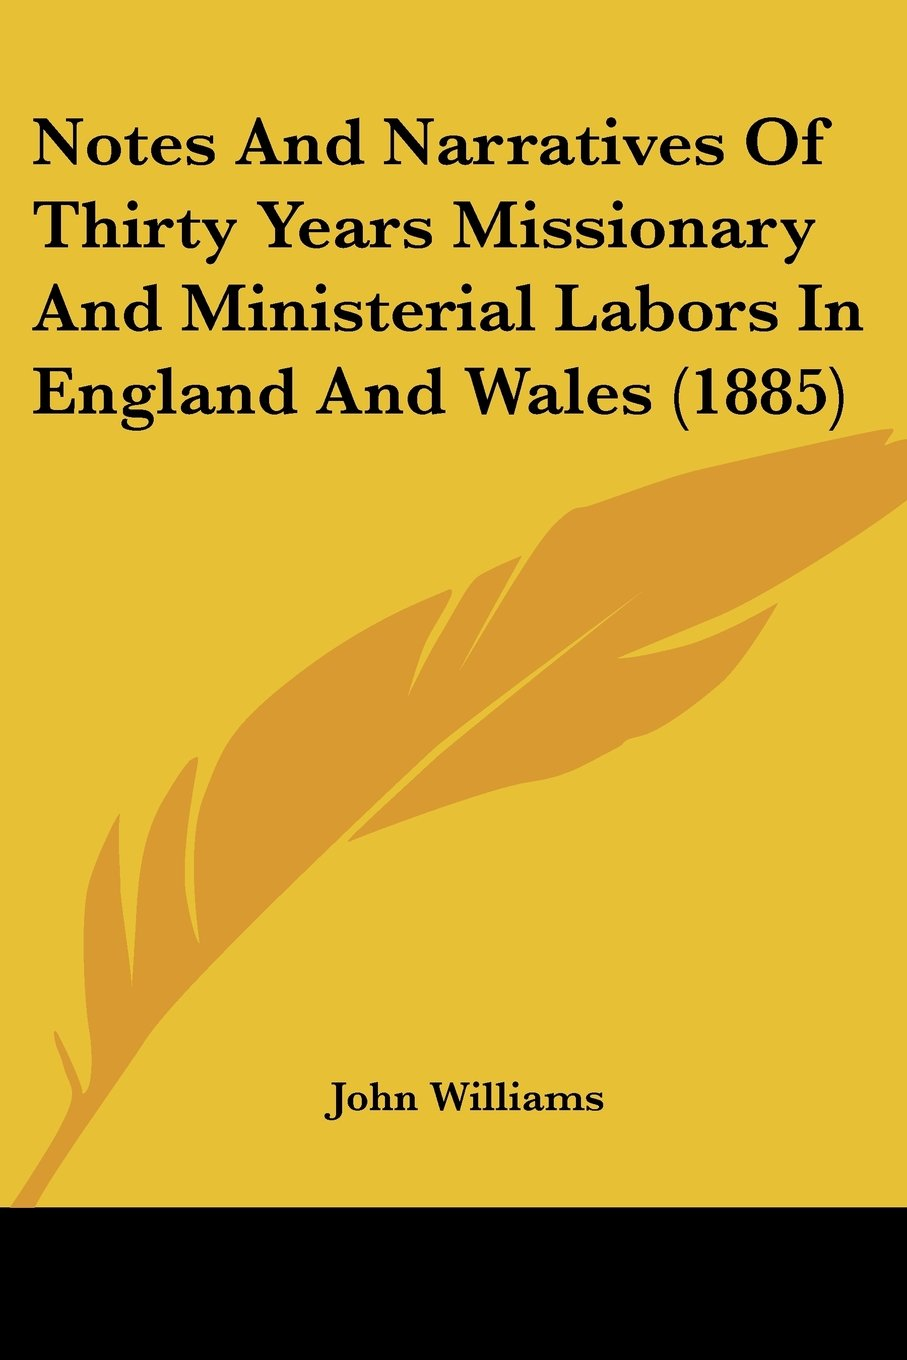 Download Notes And Narratives Of Thirty Years Missionary And Ministerial Labors In England And Wales (1885) ebook